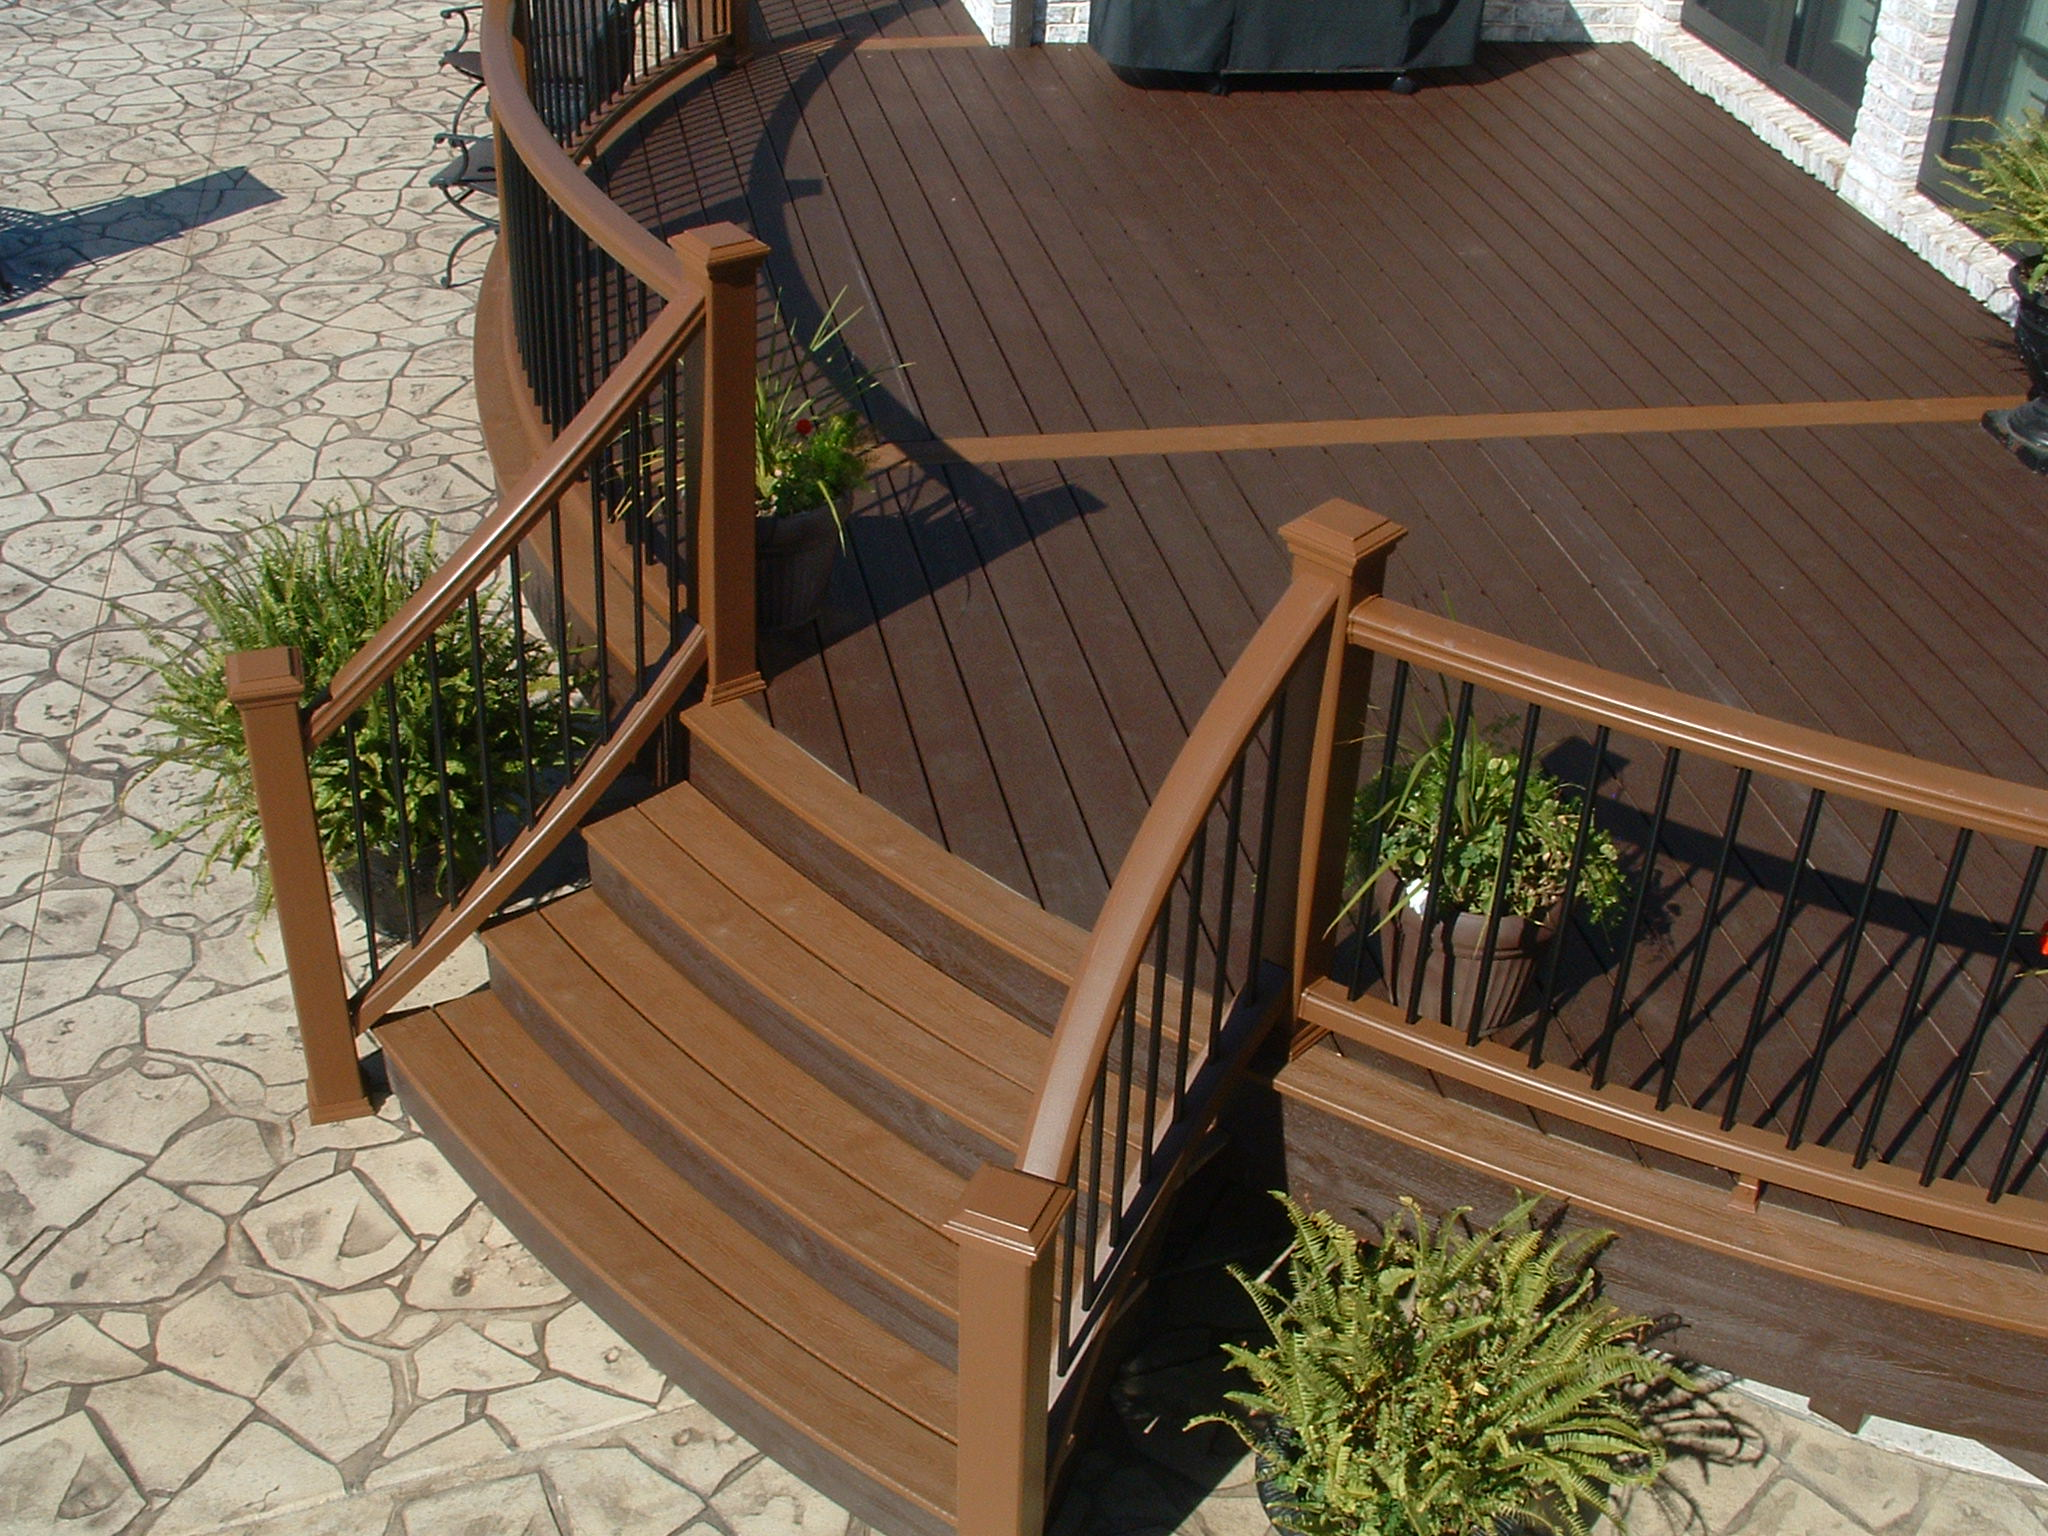 Curved Trex Transcend Railing and Decking installed by Bugh, Inc. in OH